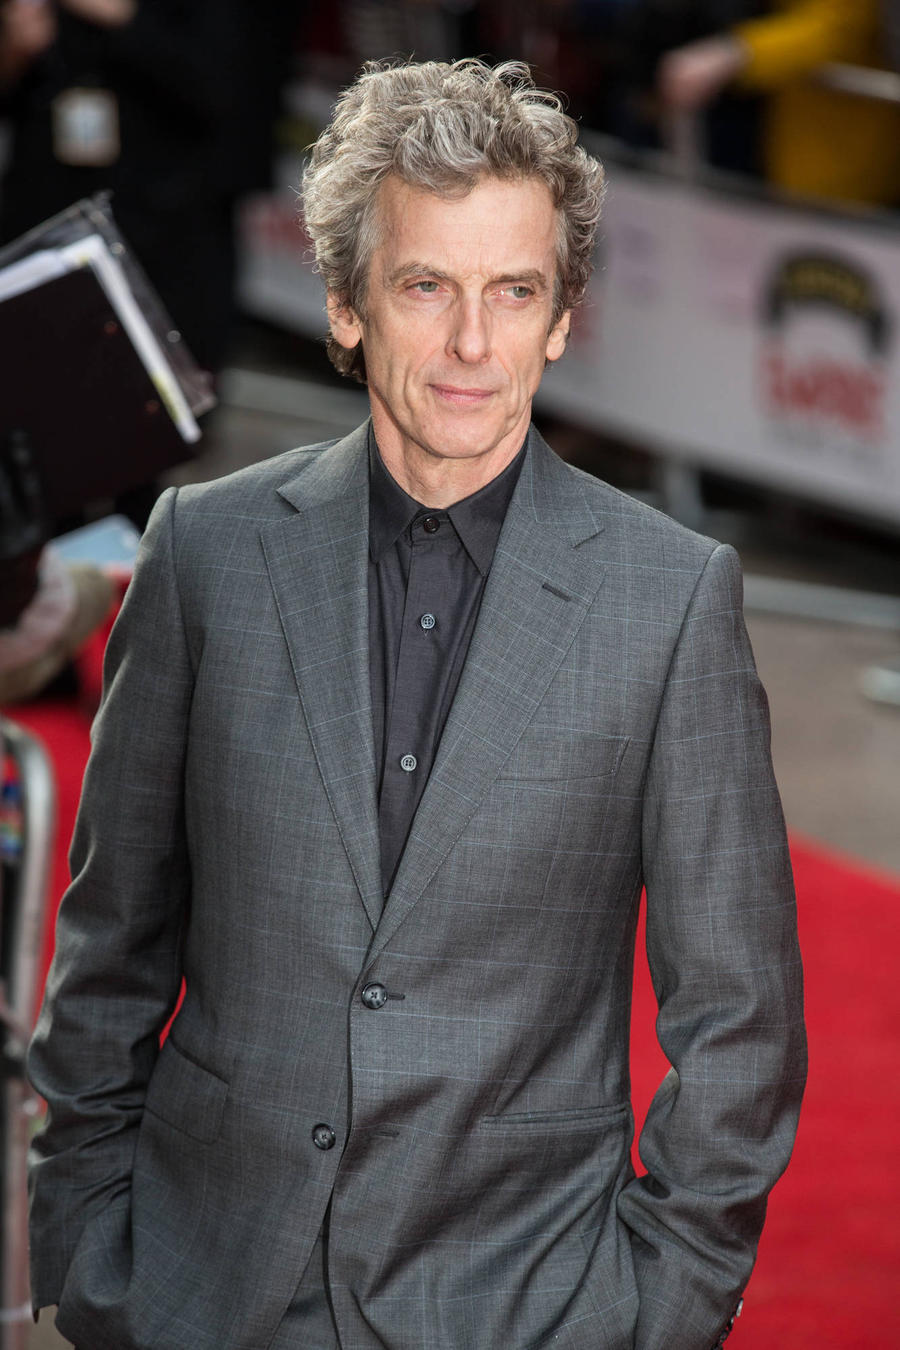 Peter Capaldi Asked To Stay On As Doctor Who Until 2018